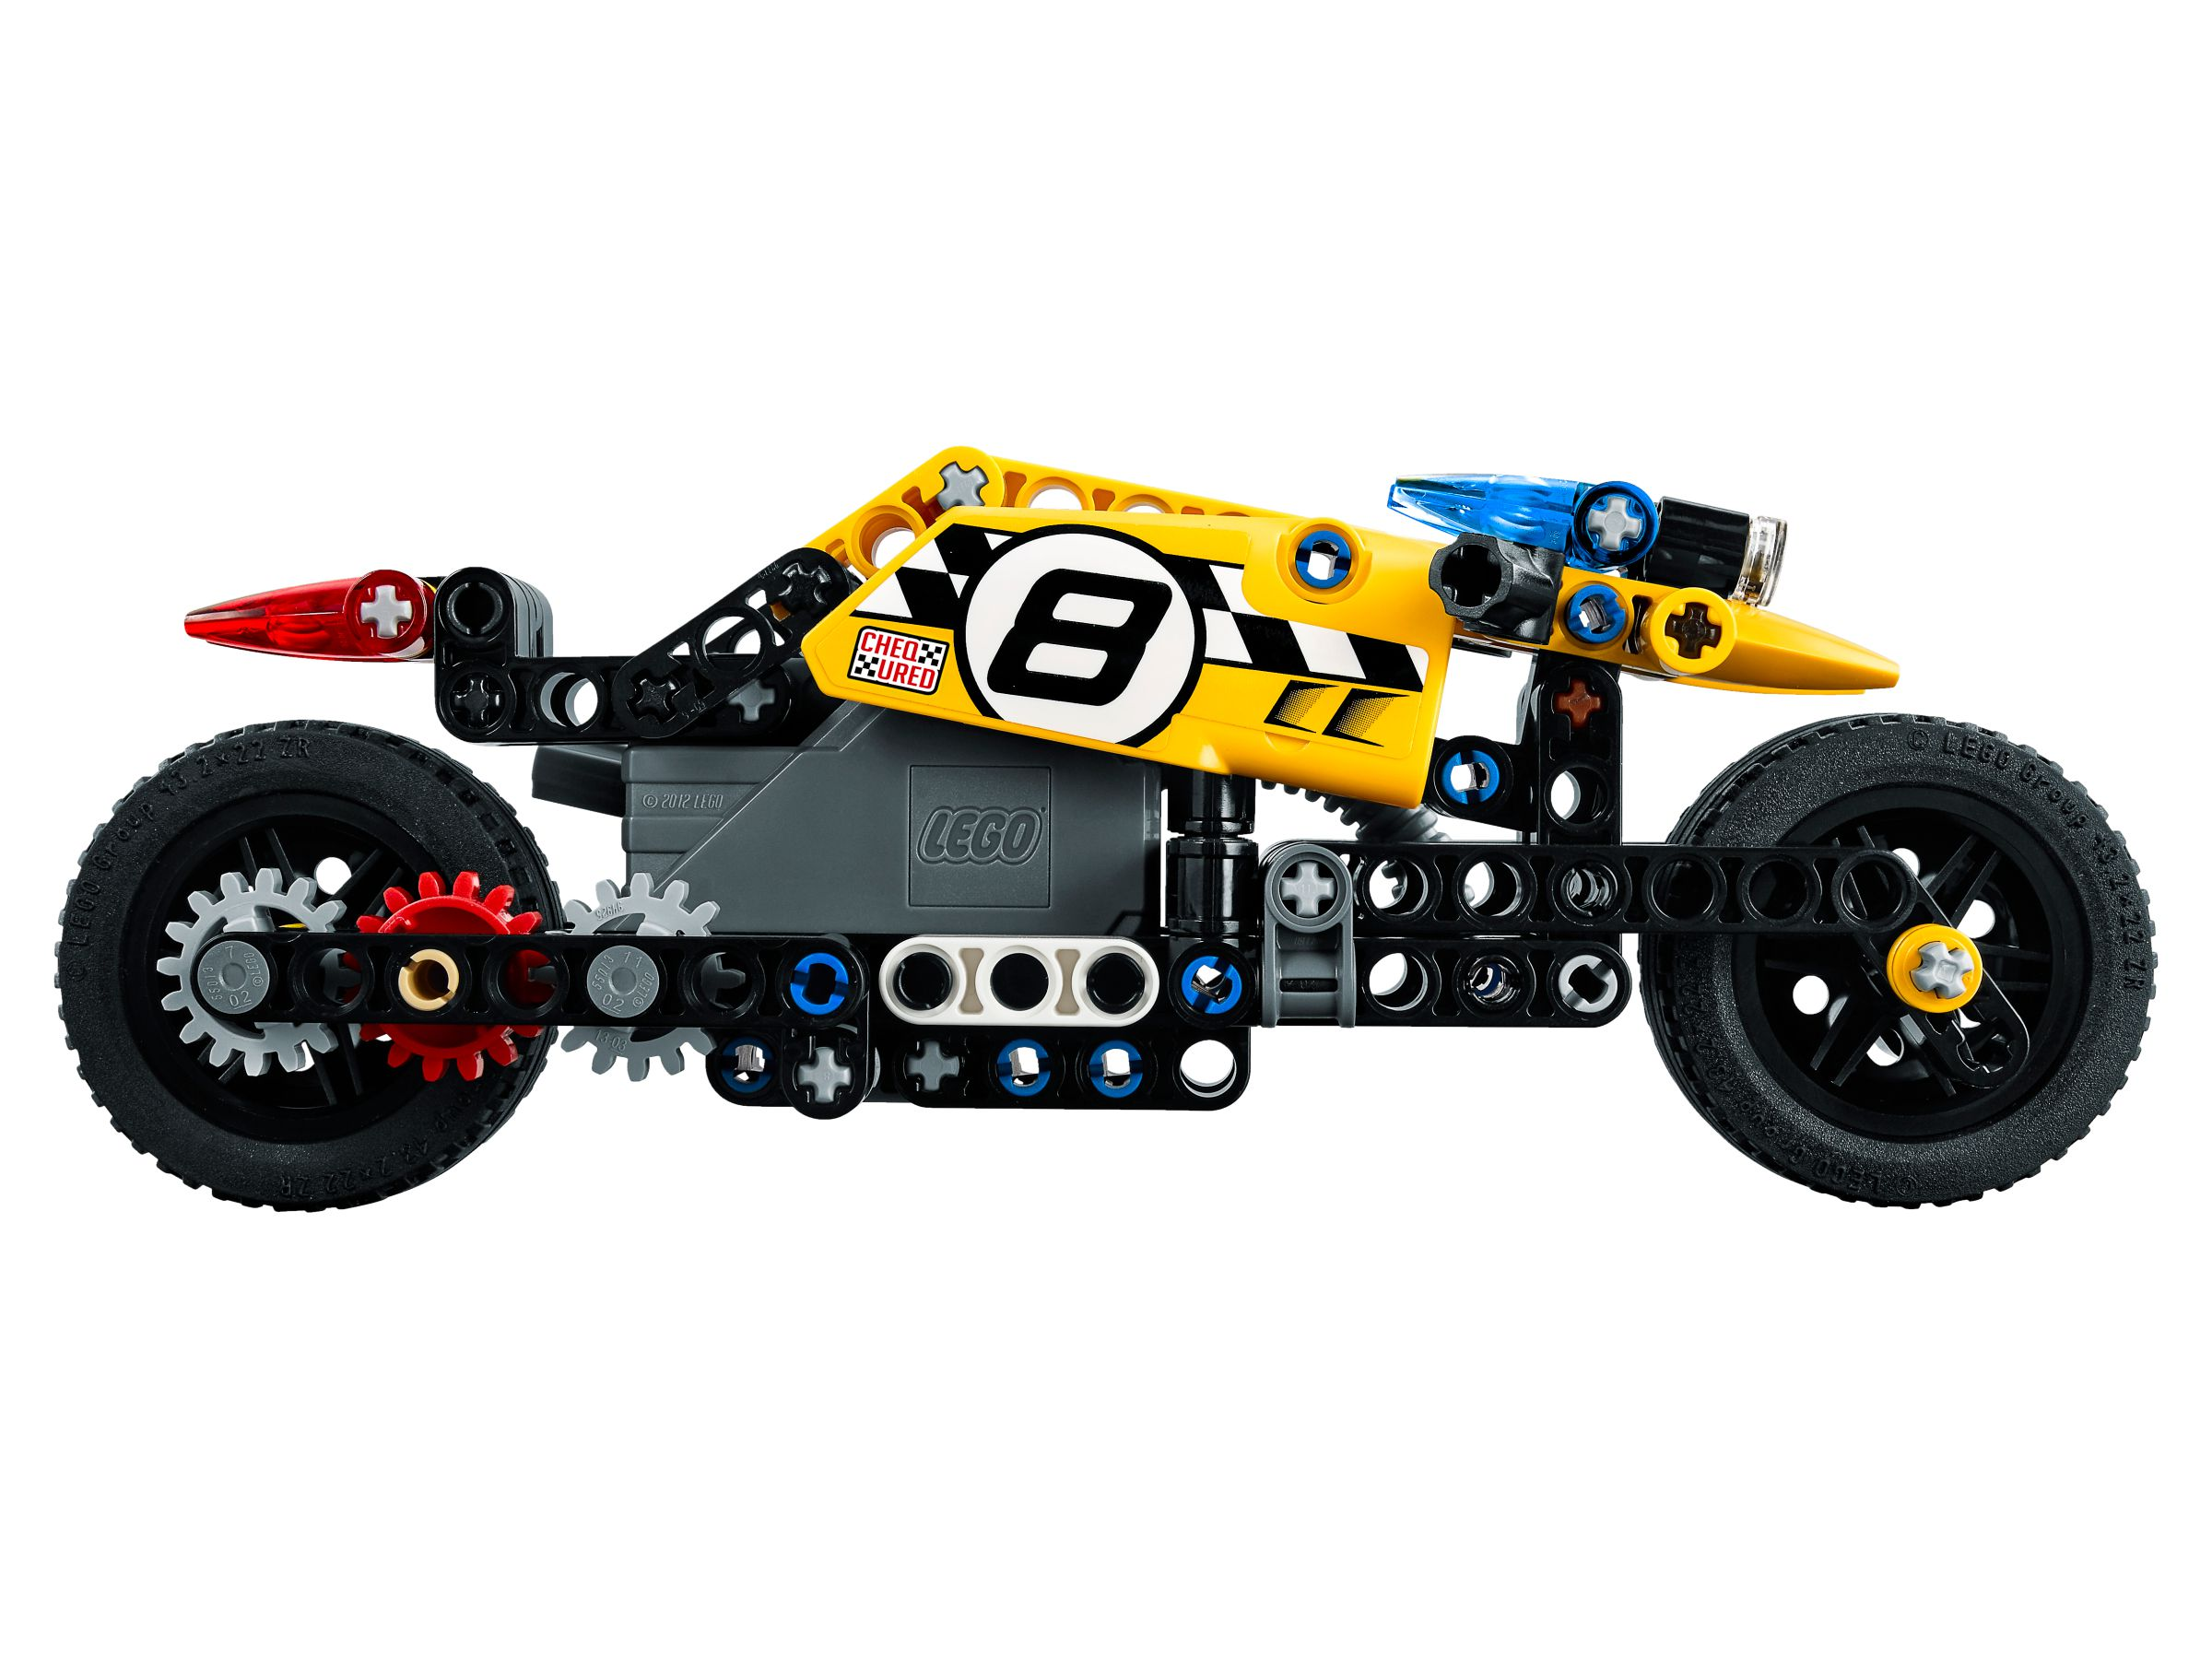 lego 42058 stunt motorrad technic 2017 ab 13 30 33 gespart stunt bike brickmerge. Black Bedroom Furniture Sets. Home Design Ideas